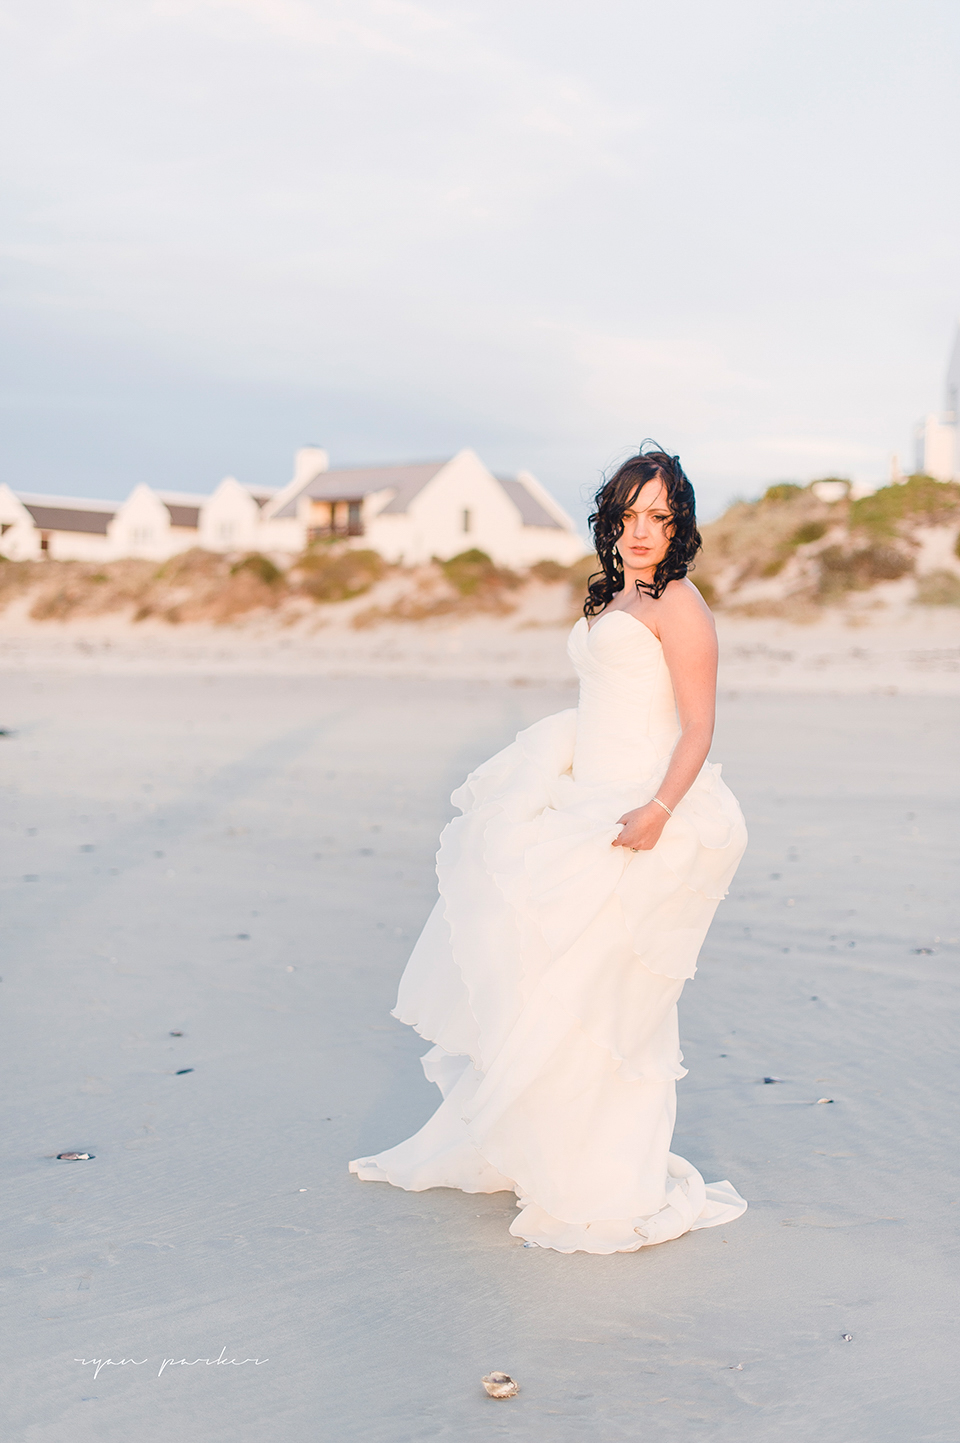 RYAN PARKER_WEDDING PHOTOGRAPHER_FINE ART_WESTERN_CAPE PATERNOSTER_M&F-2-7.jpg